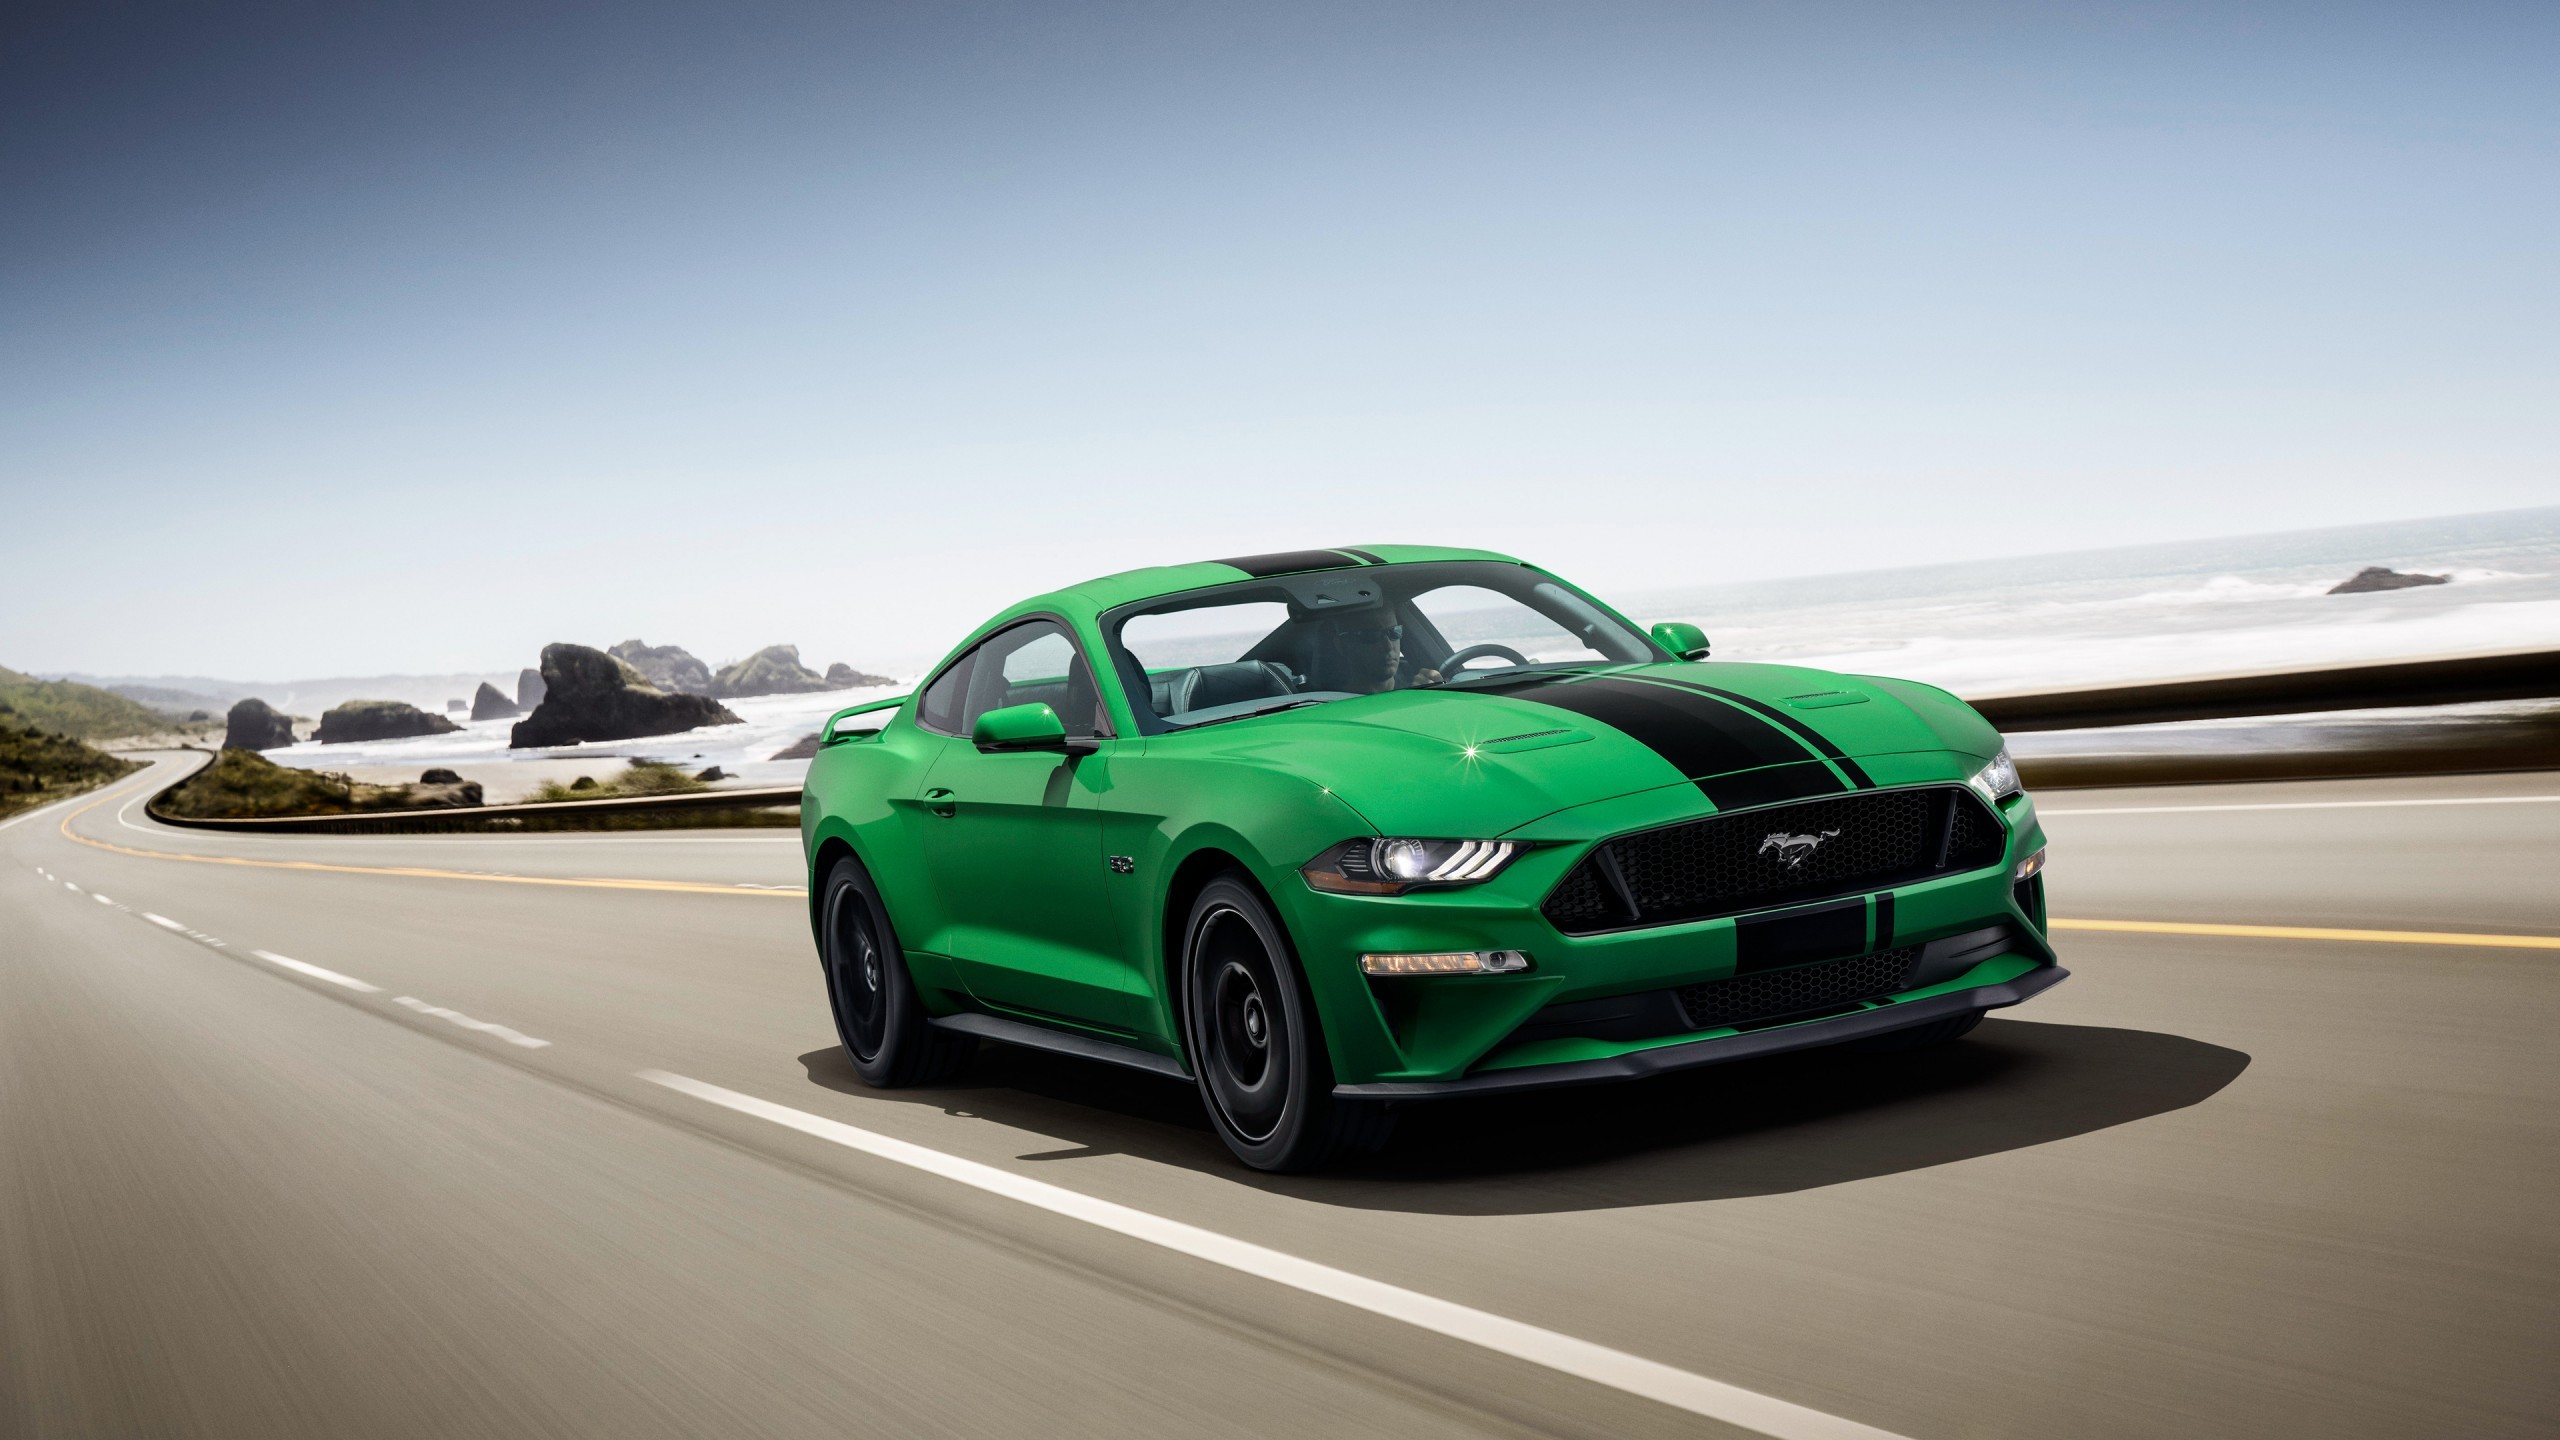 2018 Ford Mustang GT Fastback 4K Wallpaper | HD Car Wallpapers | ID #10006